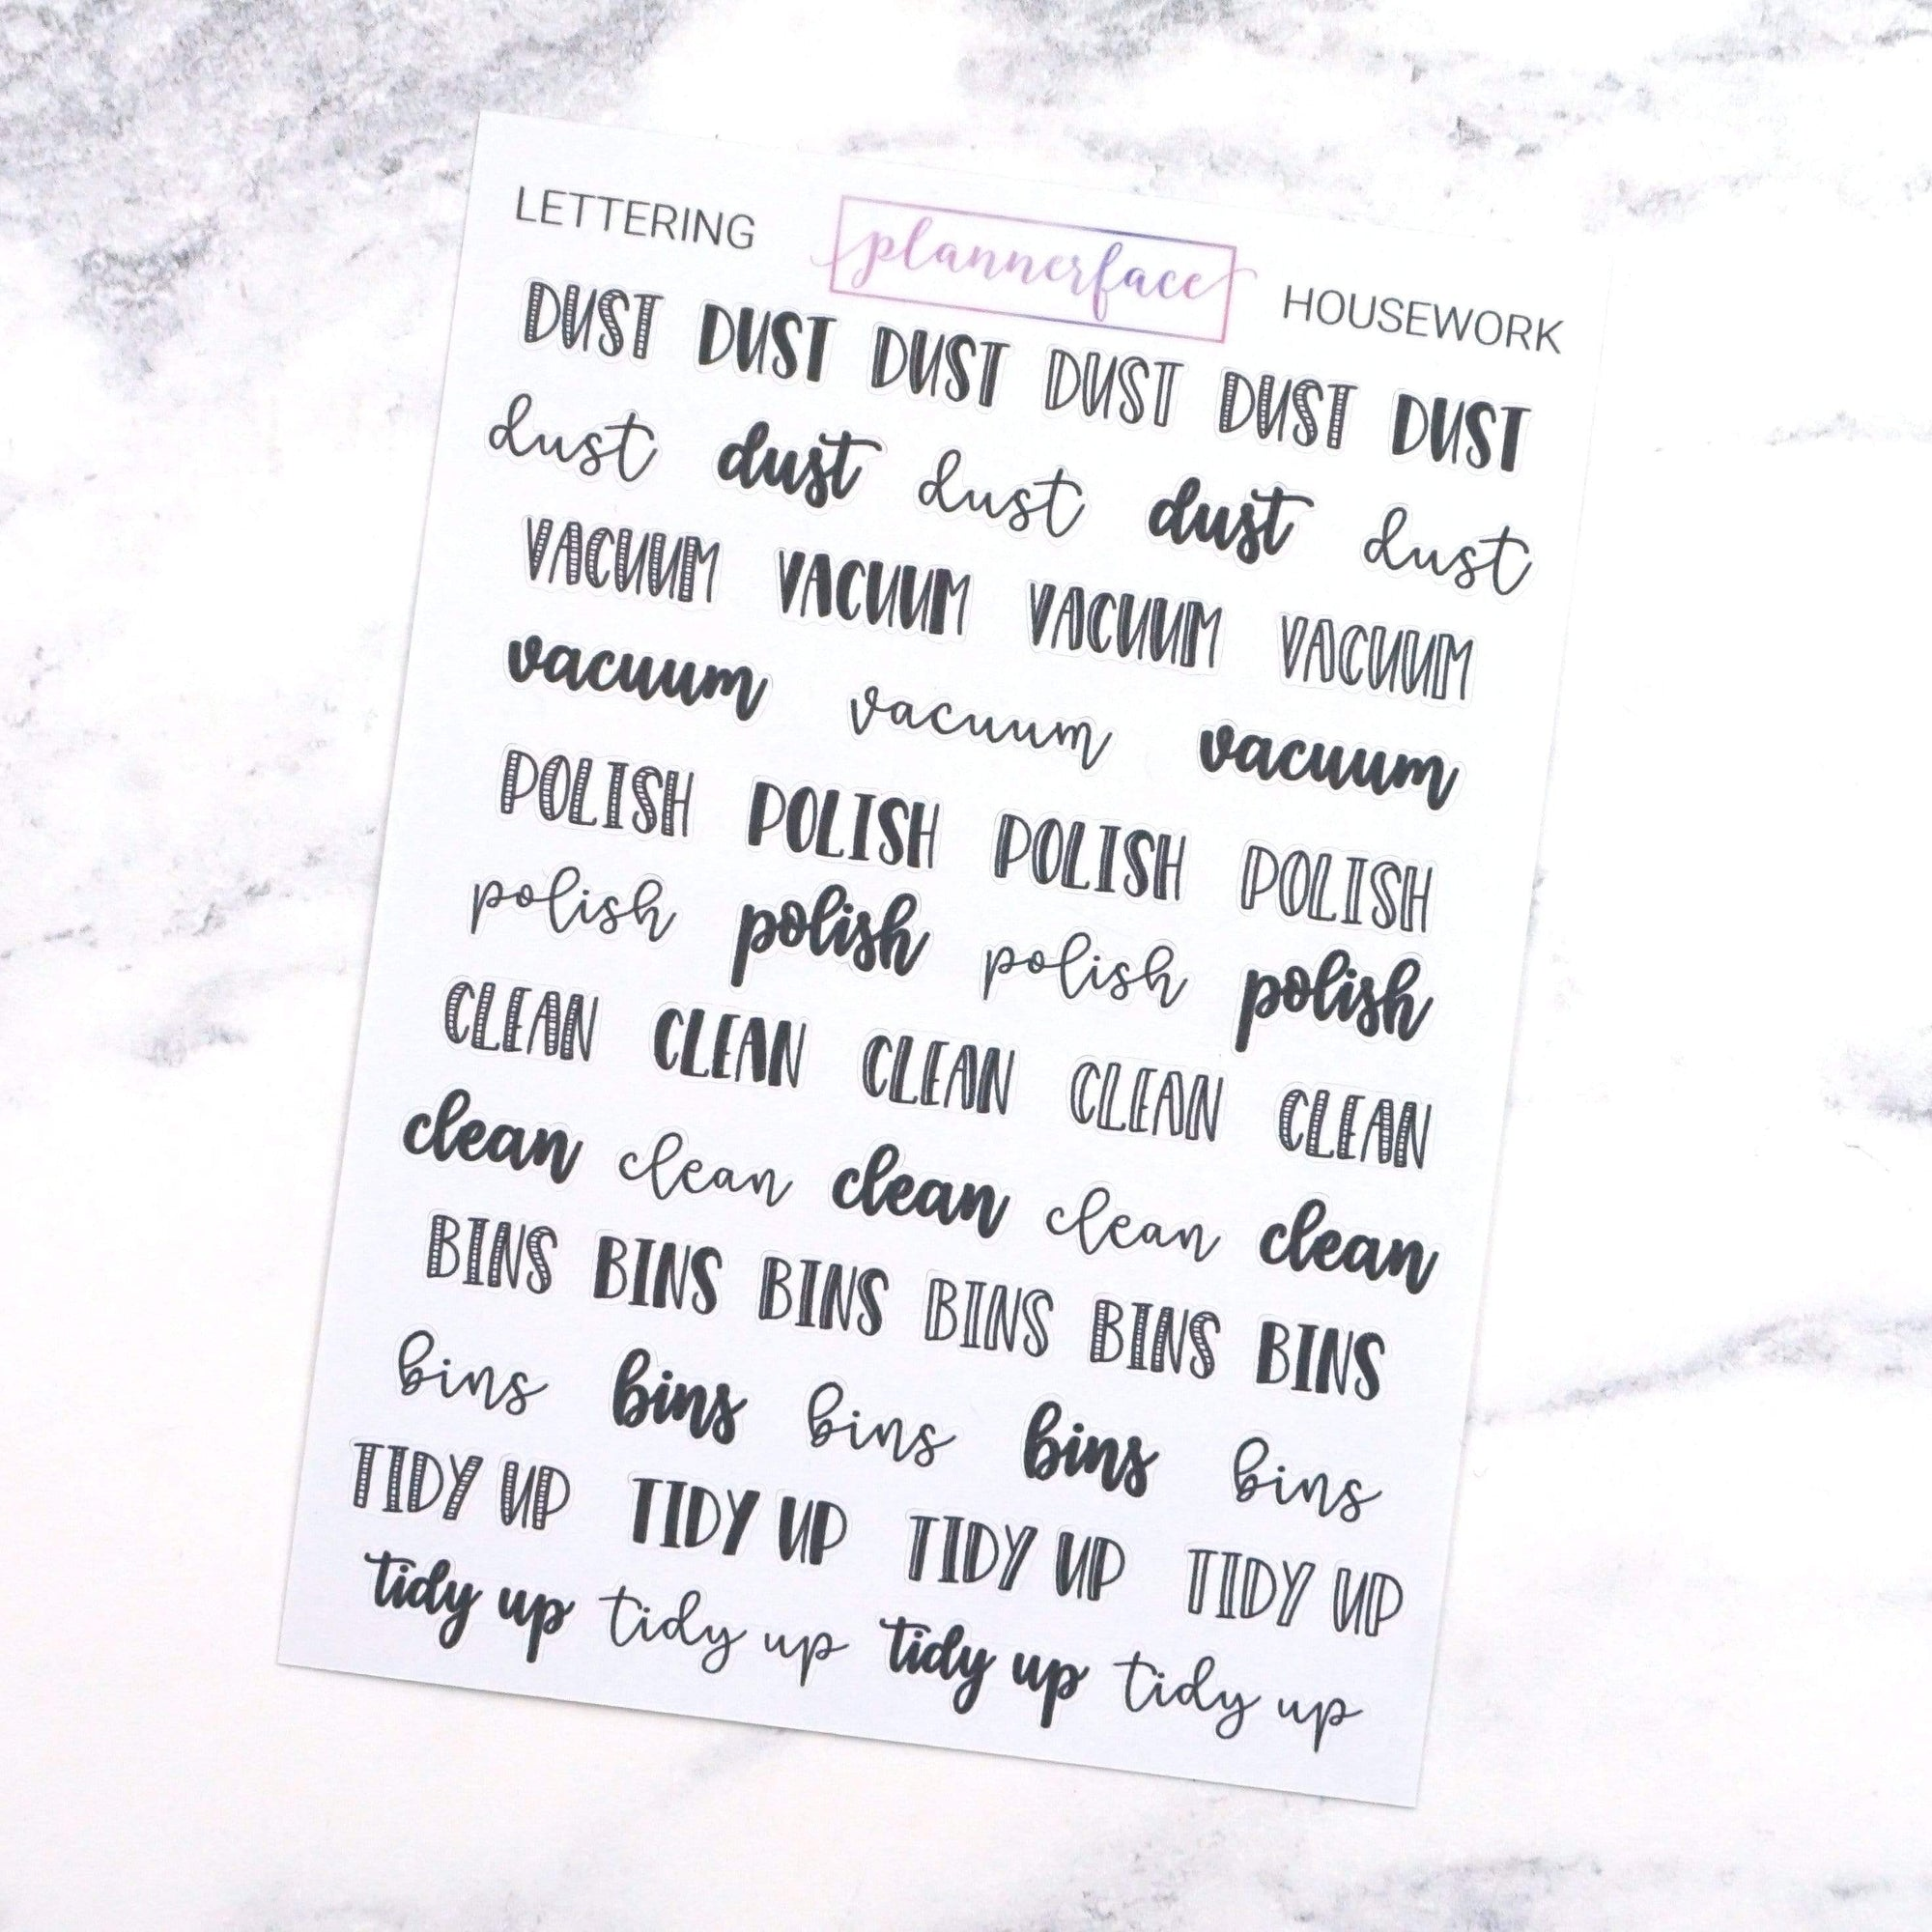 Plannerface Housework | Lettering Planner Stickers